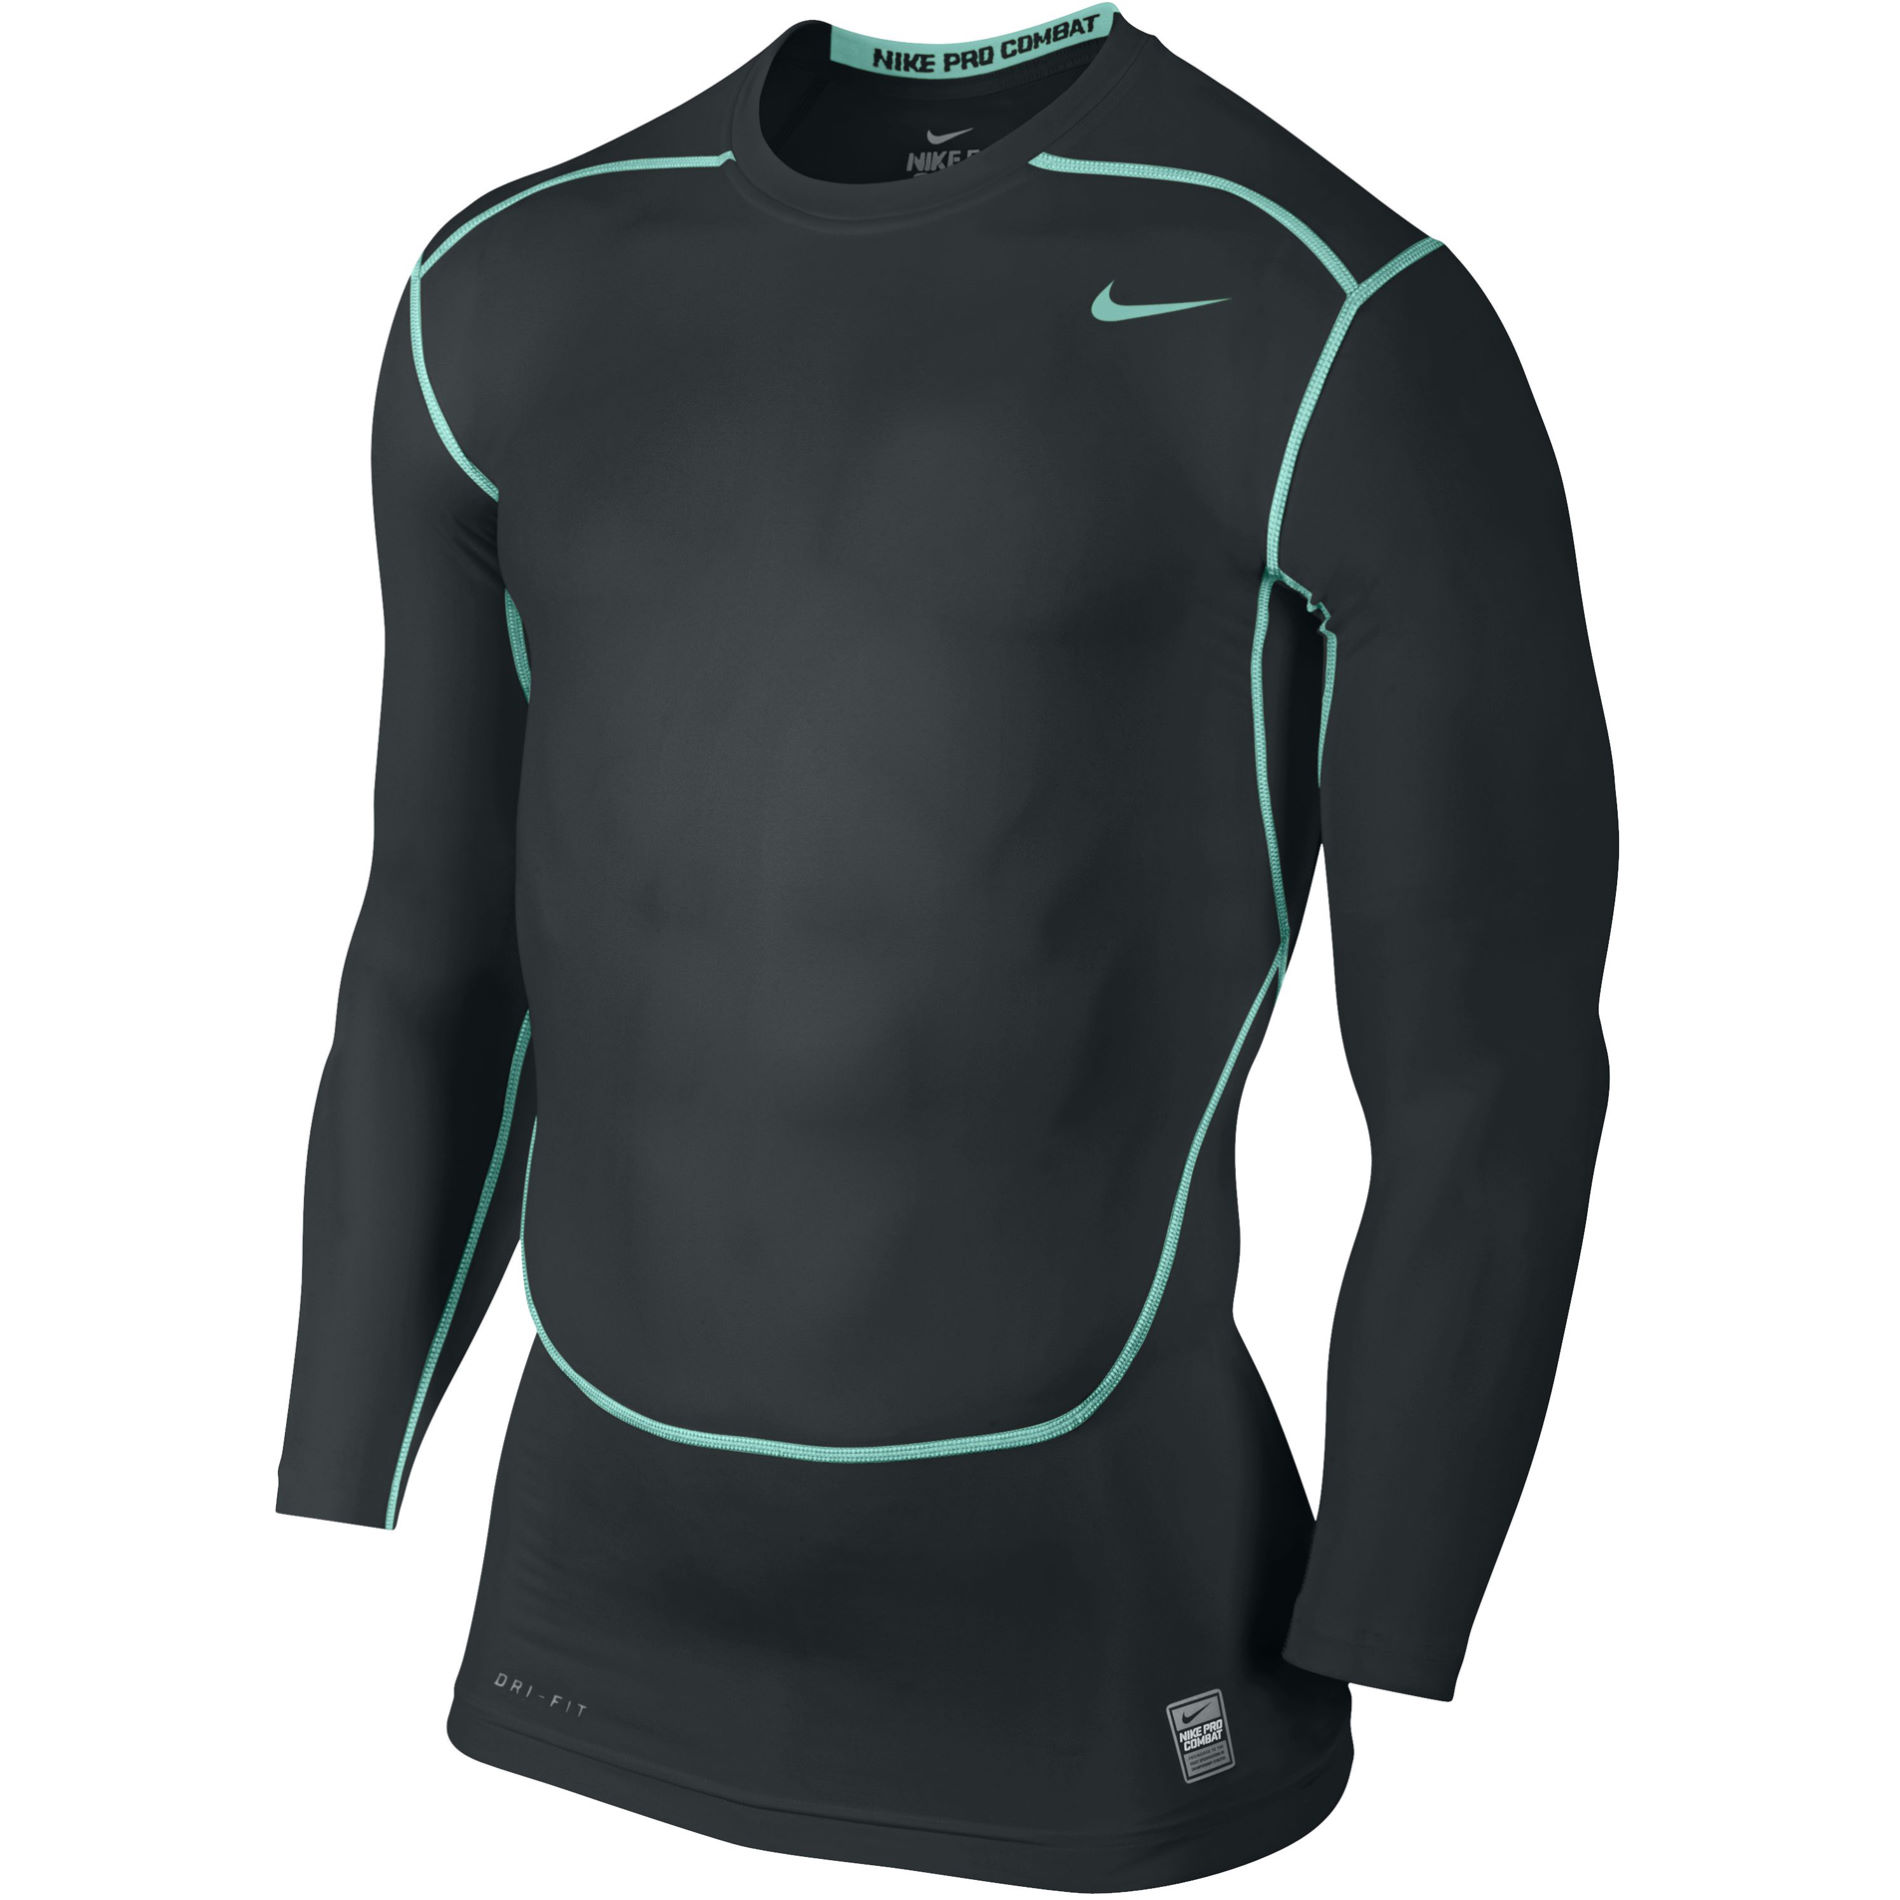 nike pro combat long sleeve. Black Bedroom Furniture Sets. Home Design Ideas